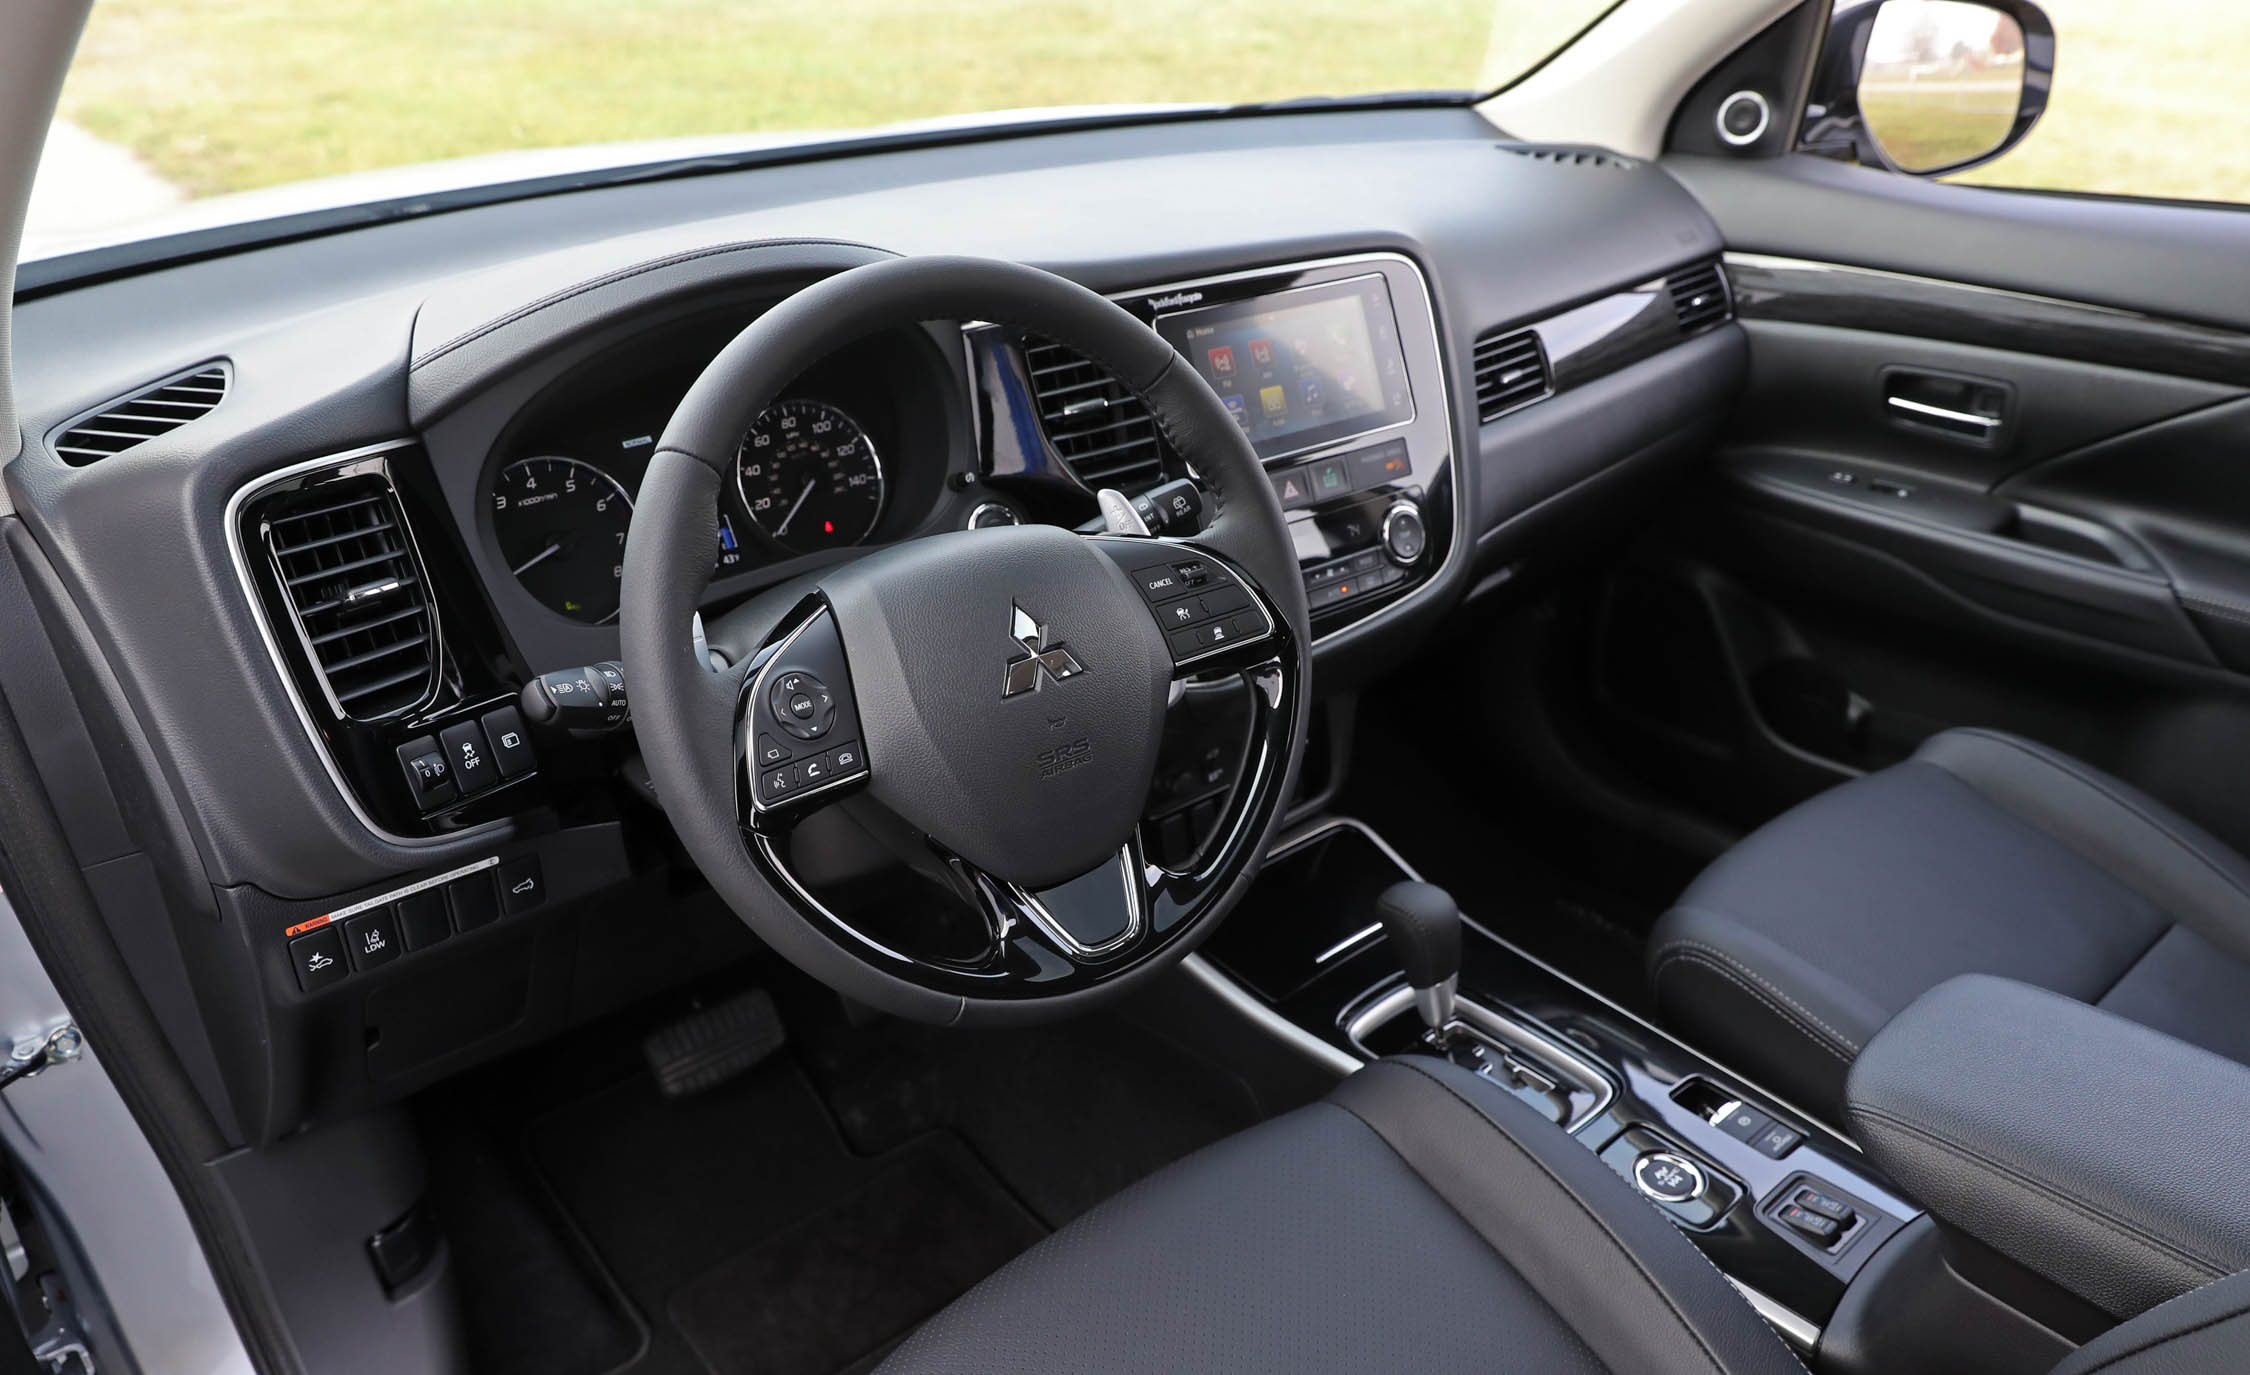 2017 Mitsubishi Outlander Gt Interior Cockpit And Dash (View 25 of 34)